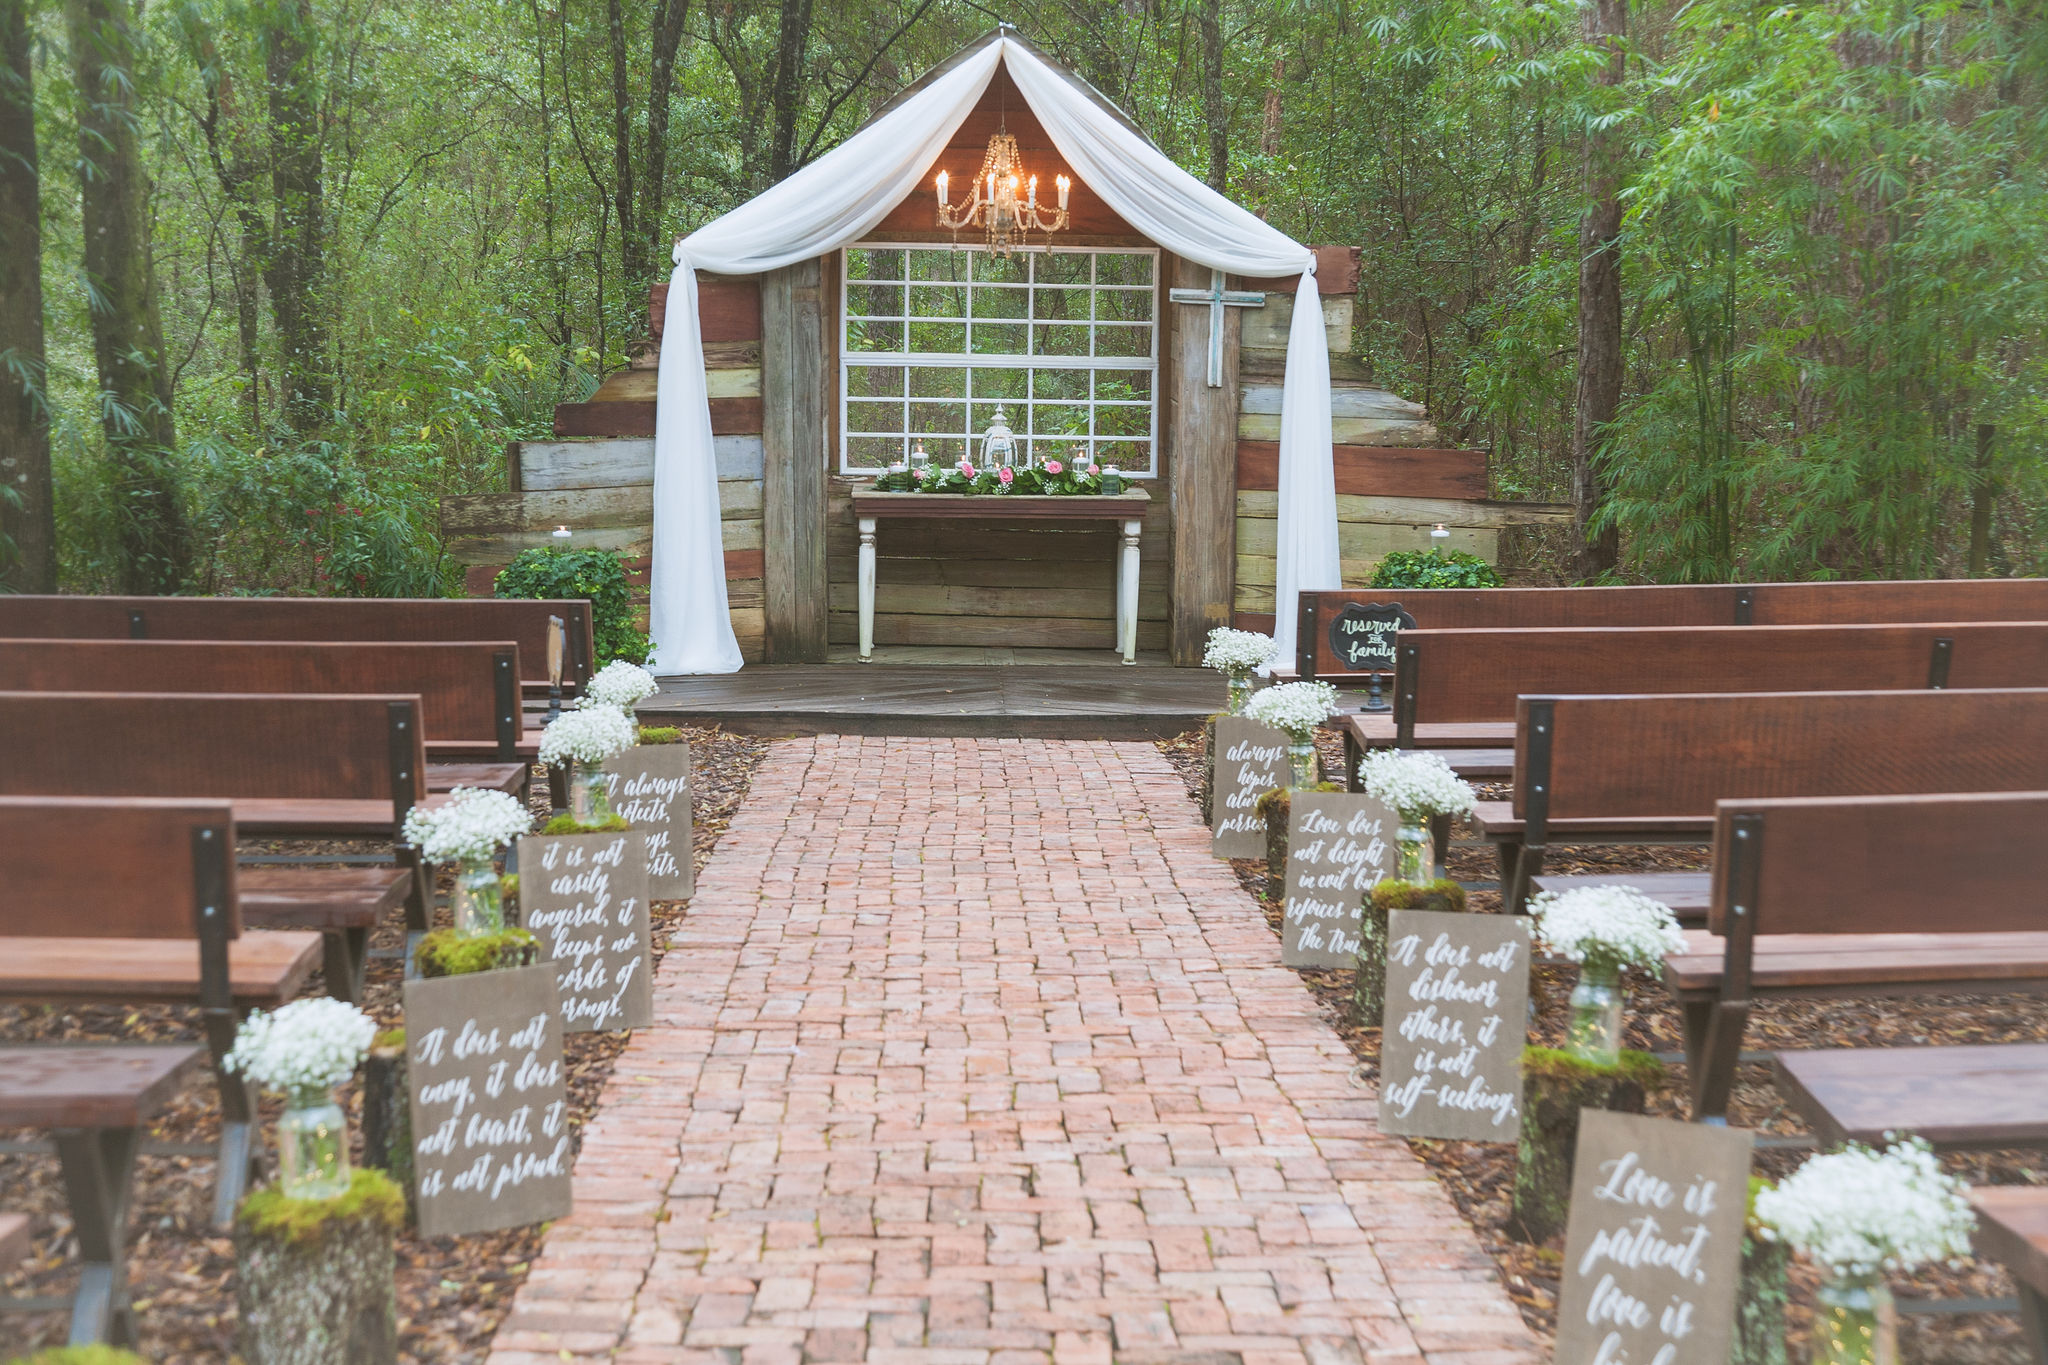 The beautiful outdoor ceremony site at Bridle Oaks.